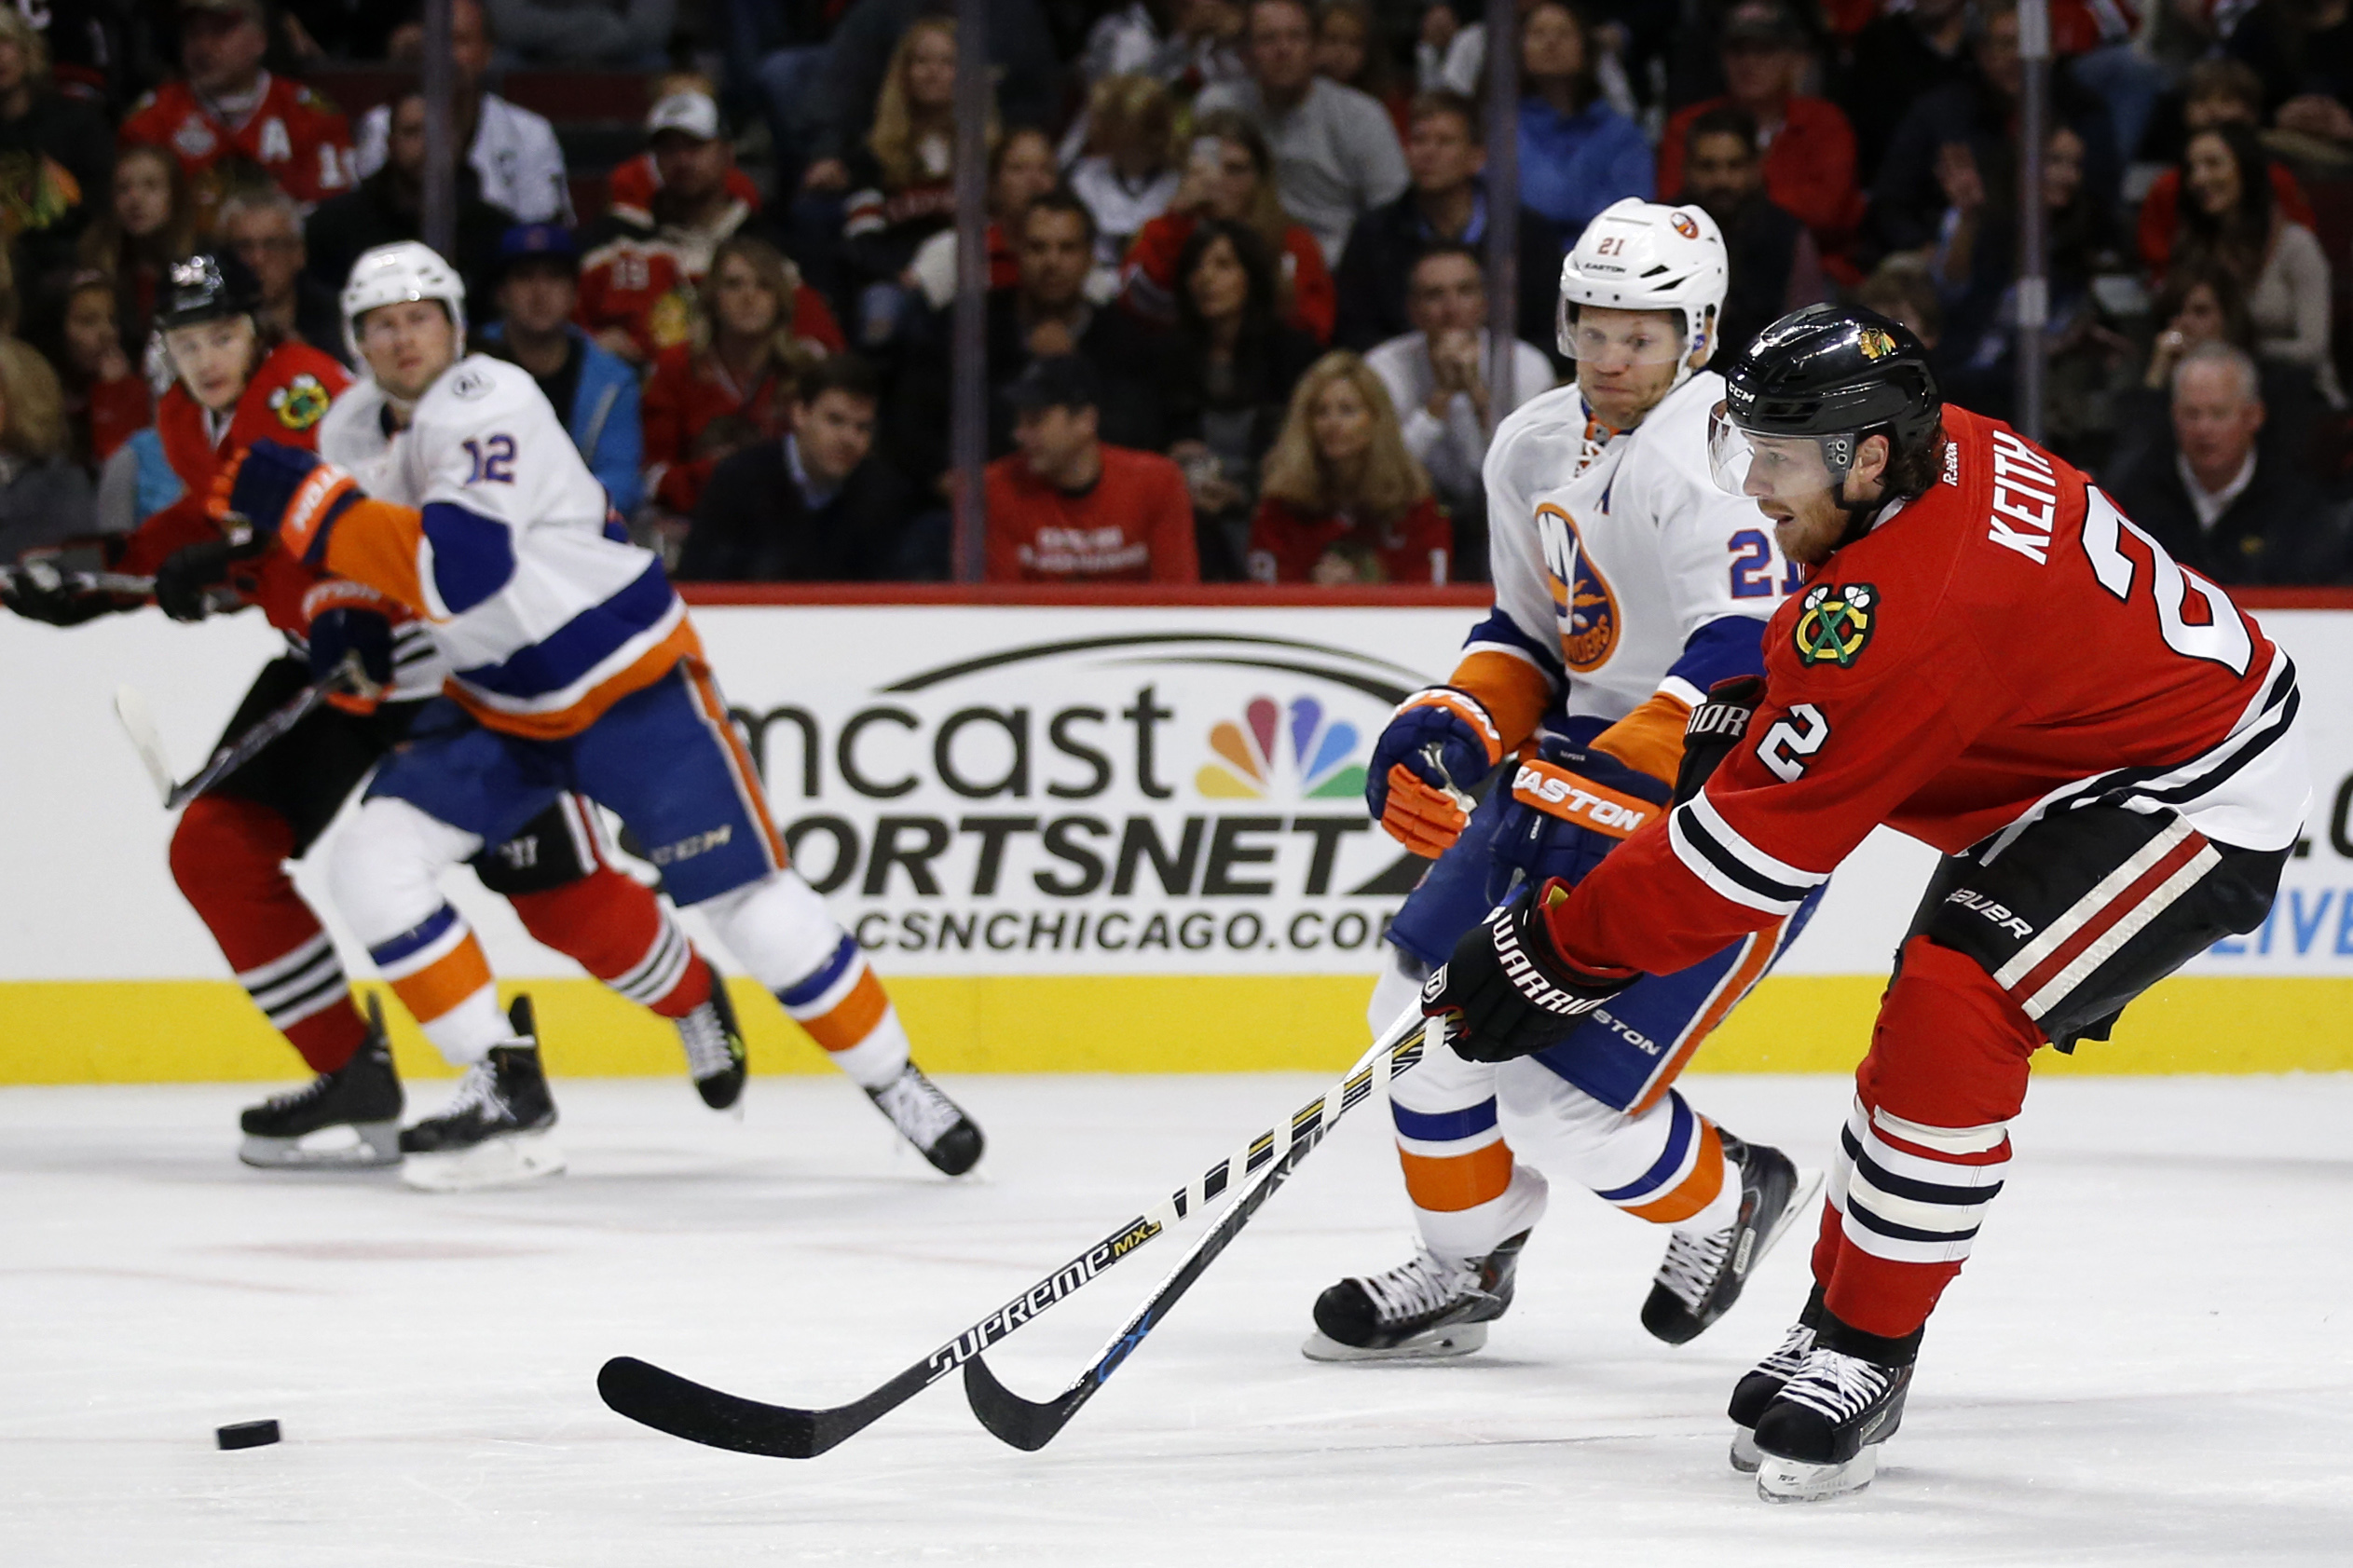 Chicago Blackhawks defenseman Duncan Keith (2) passes past New York Islanders right wing Kyle Okposo (21) during the first period of an NHL hockey game Saturday, Oct. 10, 2015, in Chicago. (AP Photo/Andrew A. Nelles)